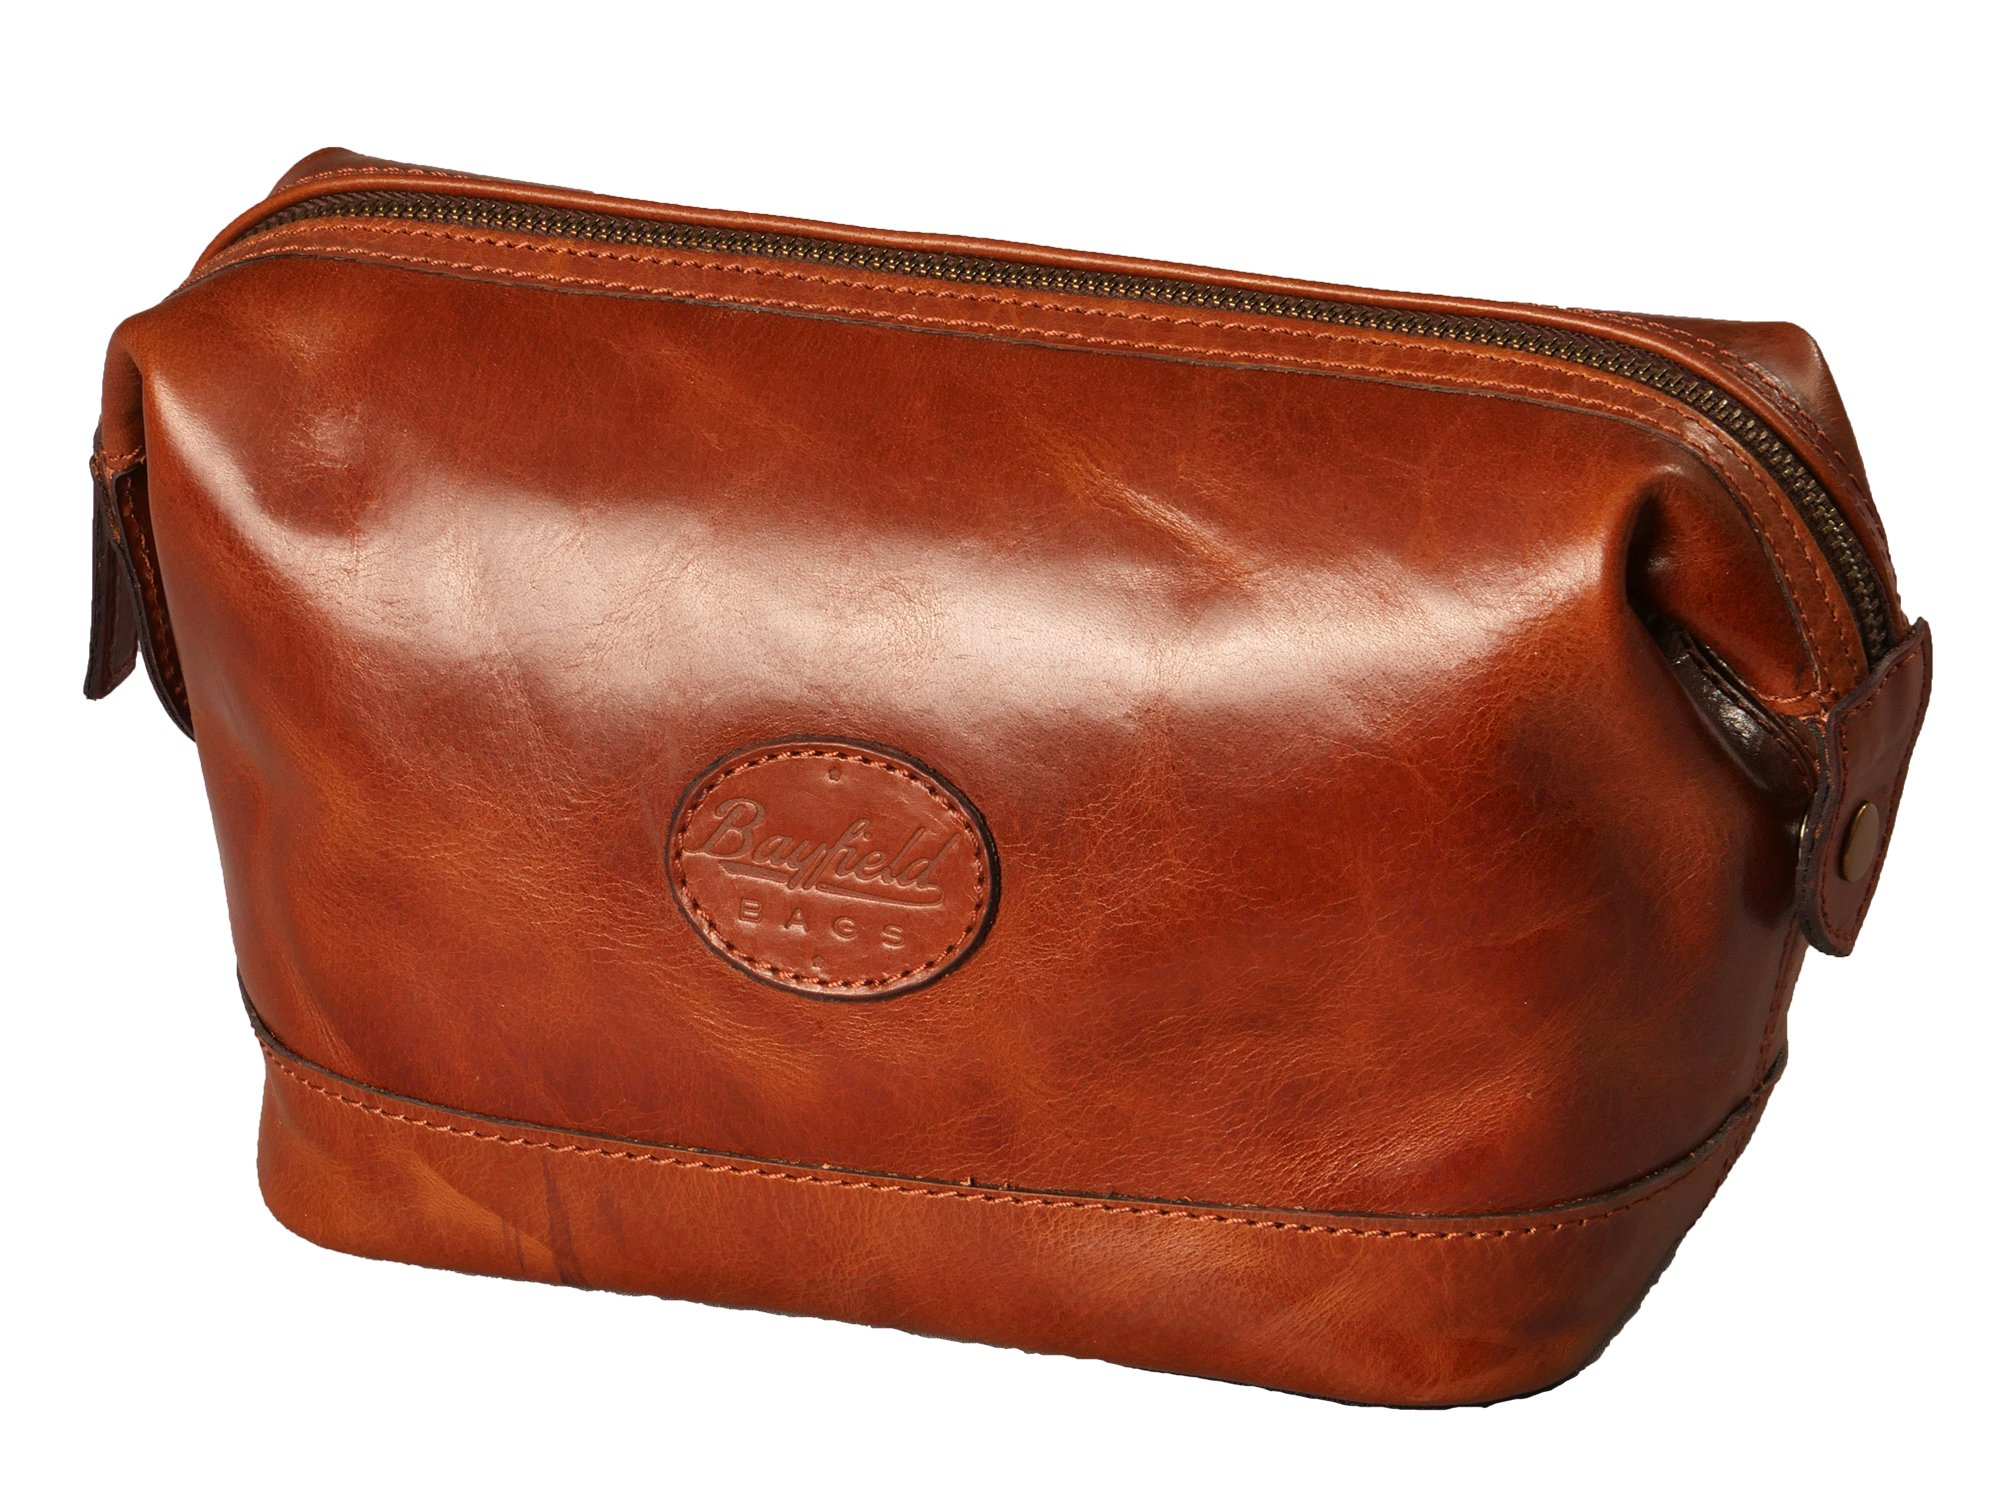 Leather Toiletry Bag for Men – Zippered Dopp Kit Organizer – Brown Travel Shaving Kit Case (9x5x7) by Bayfield Bags by Bayfield Bags (Image #1)